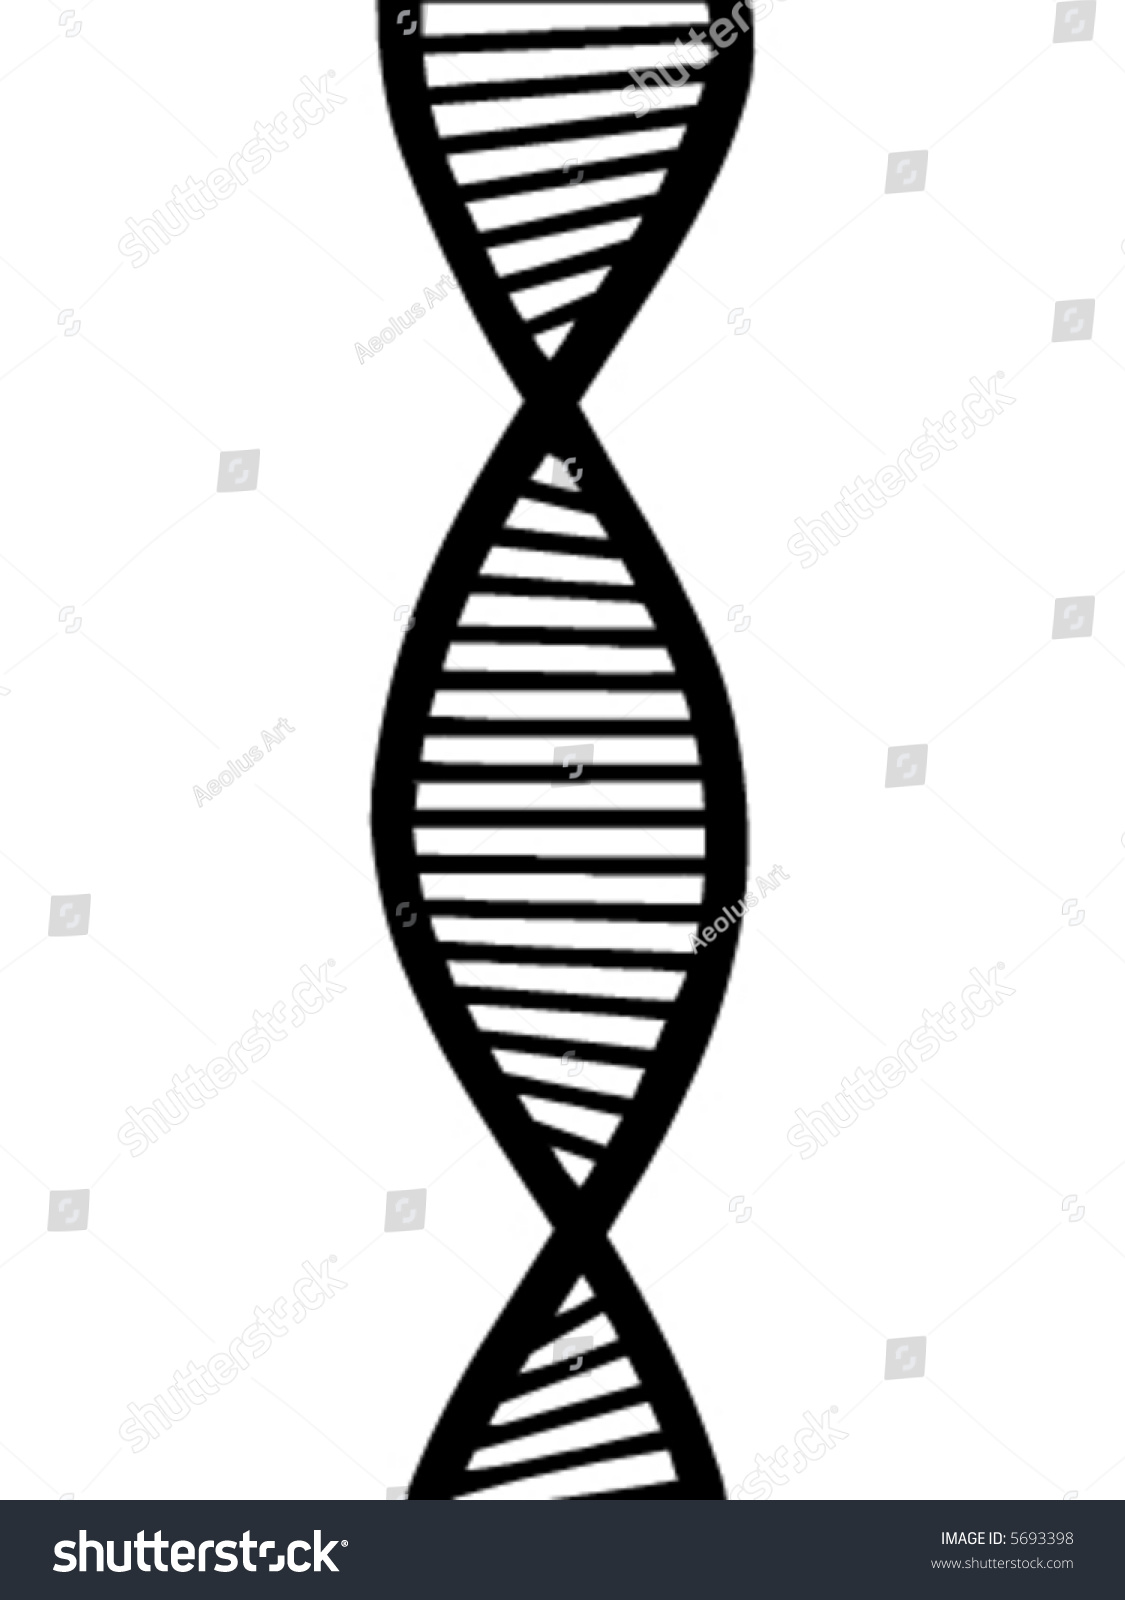 What is a vector genetics